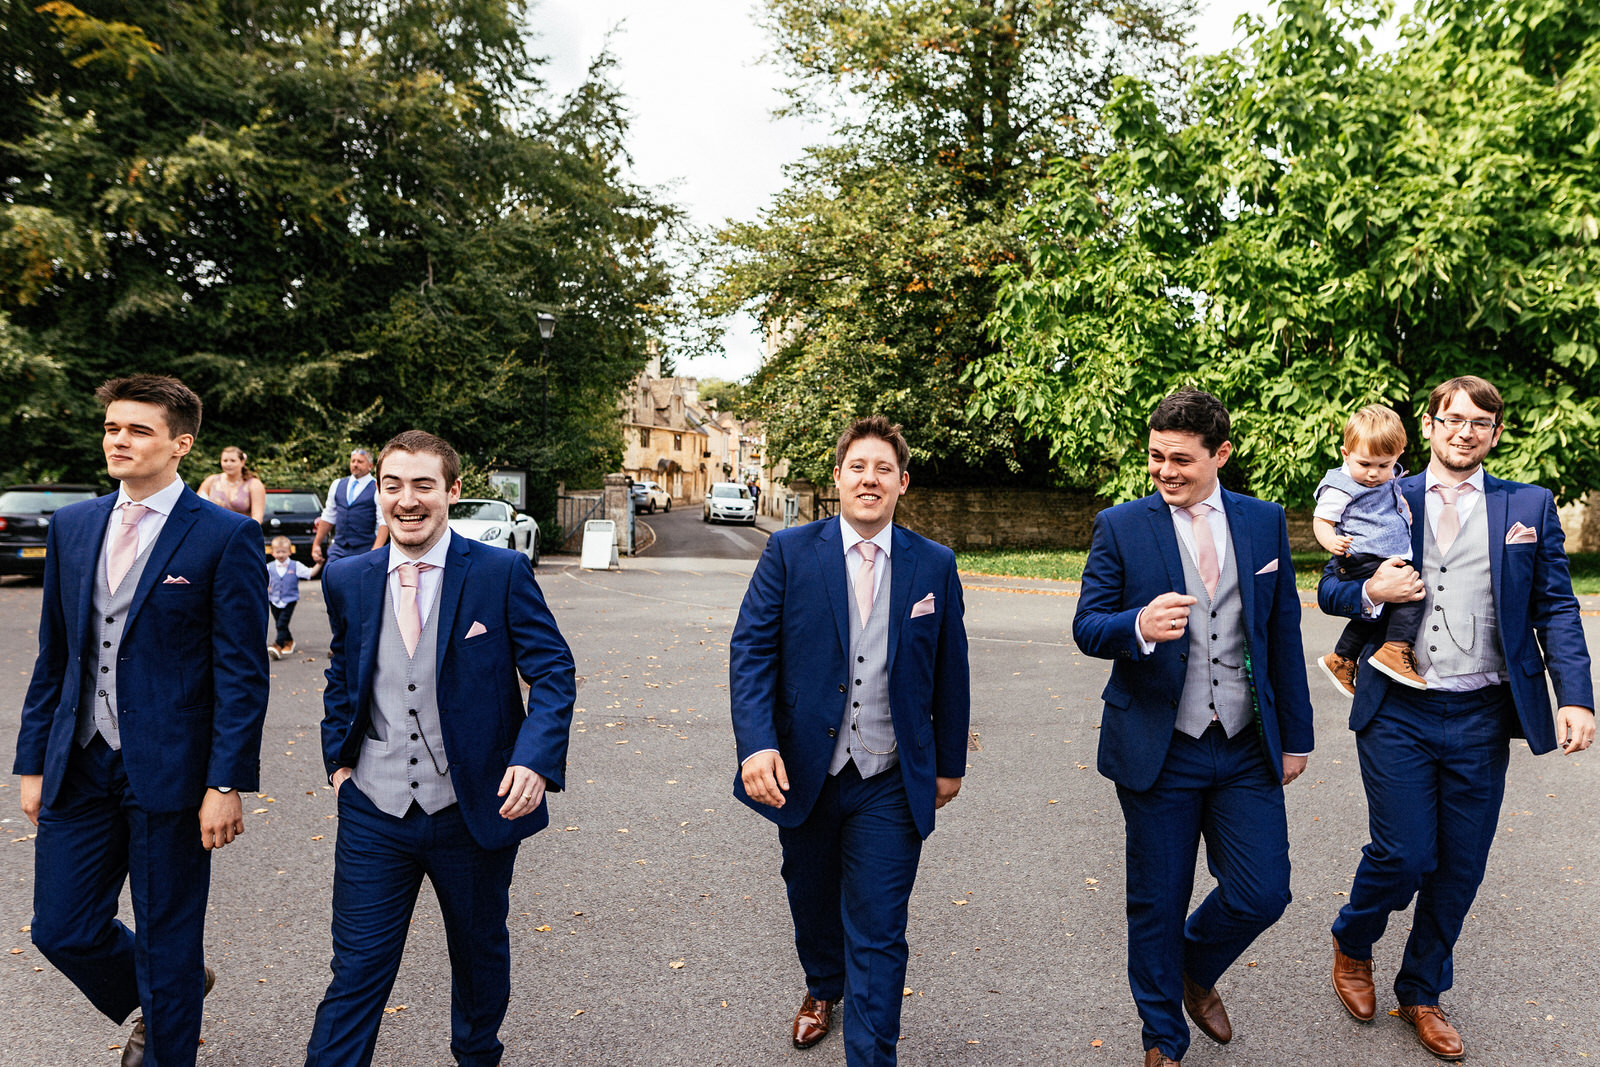 Winkworth-Farm-Wedding-Photographer-020.jpg